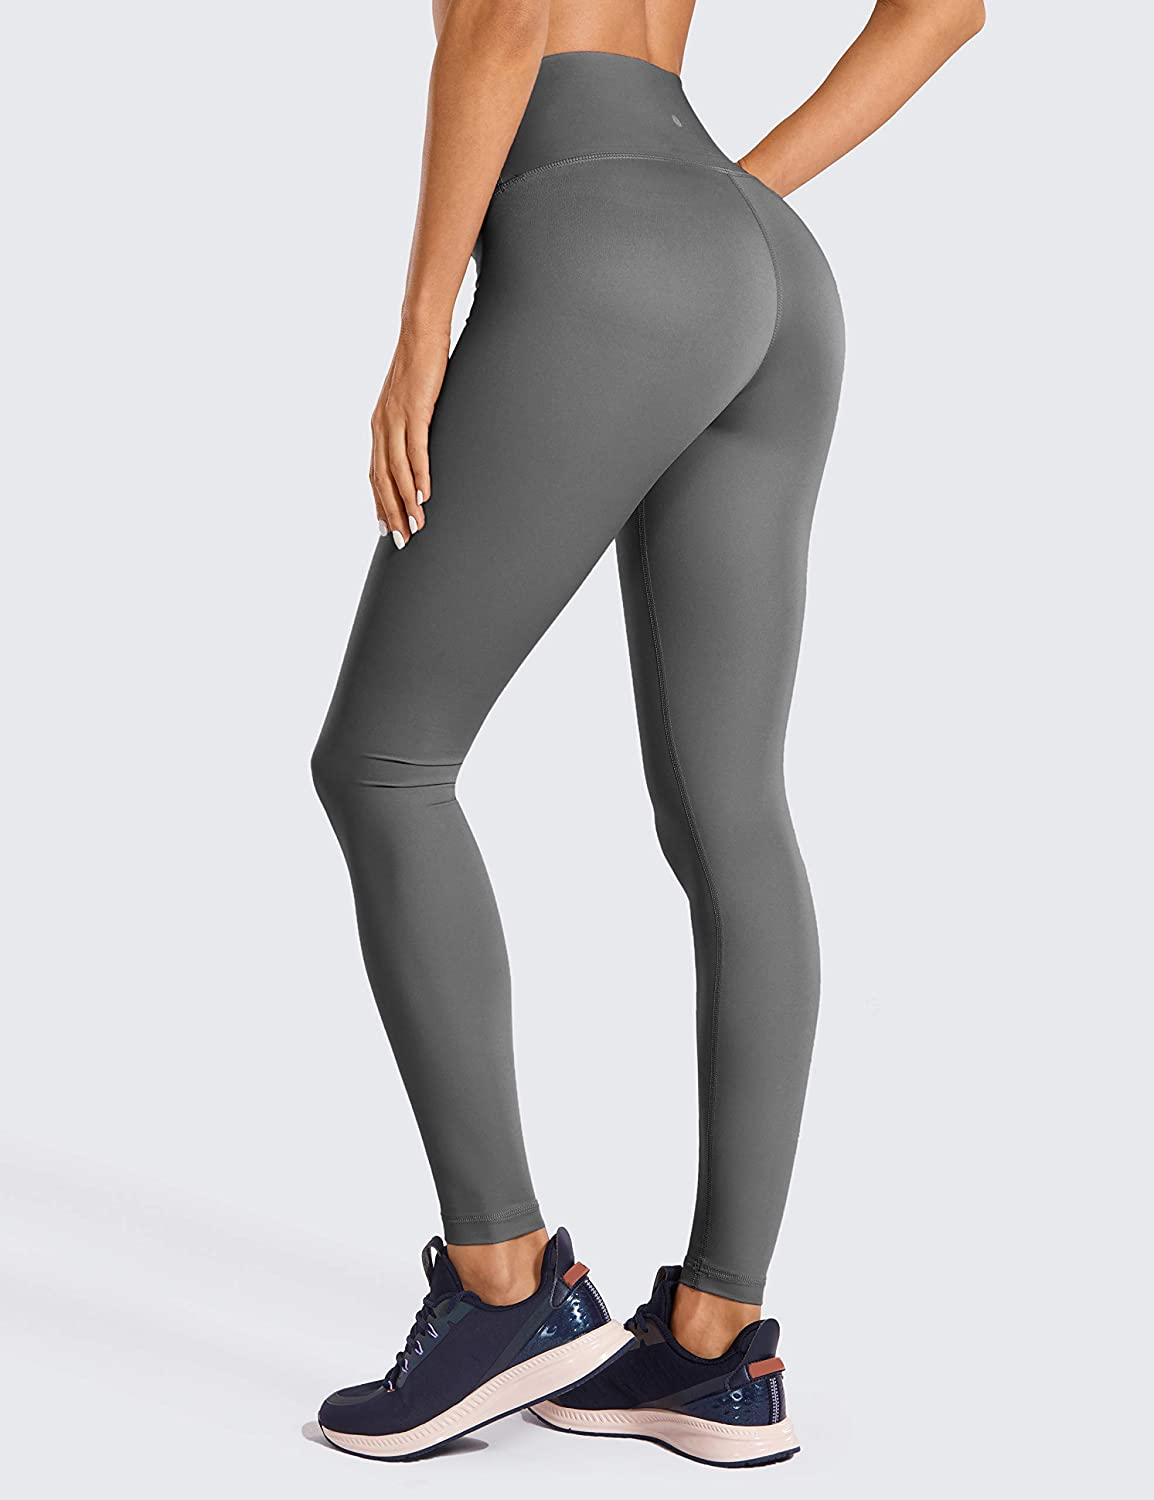 CRZ YOGA Womens Non-See Through Athletic Compression Leggings Hugged Feeling Tummy Control Workout Leggings 25/&28 inches